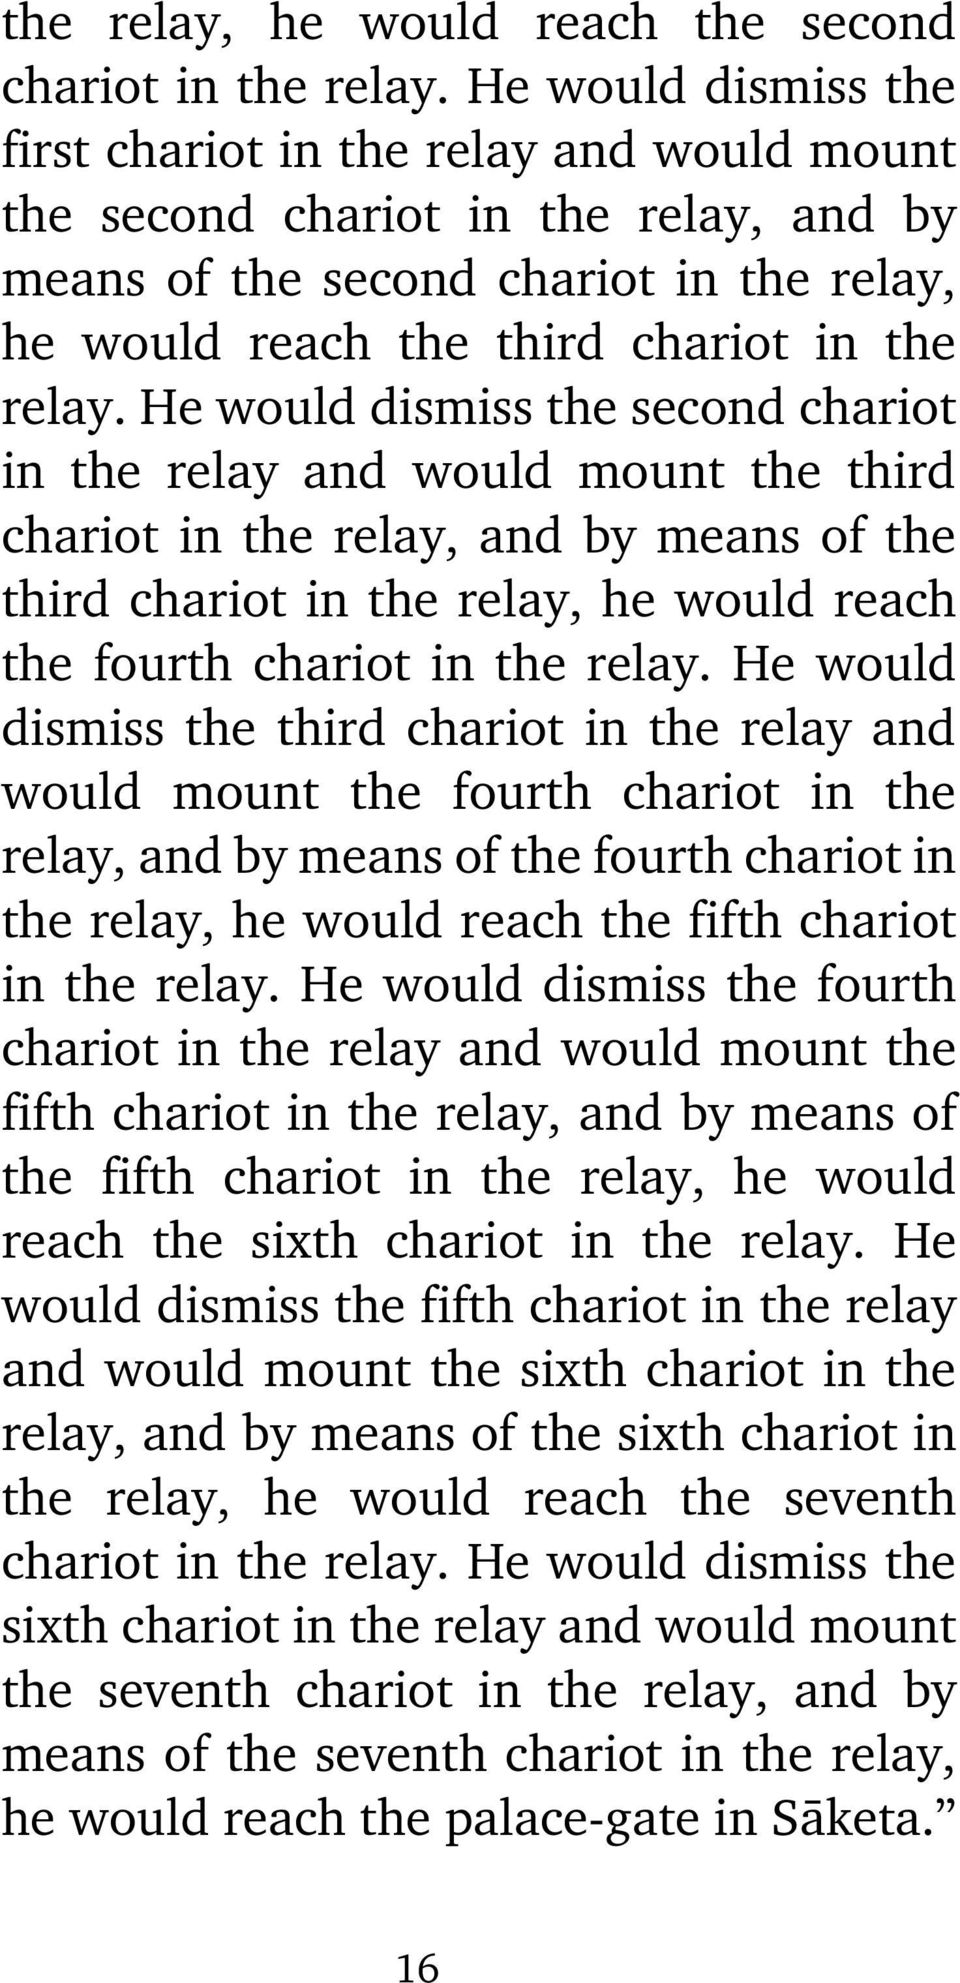 He would dismiss the second chariot in the relay and would mount the third chariot in the relay, and by means of the third chariot in the relay, he would reach the fourth chariot in the relay.